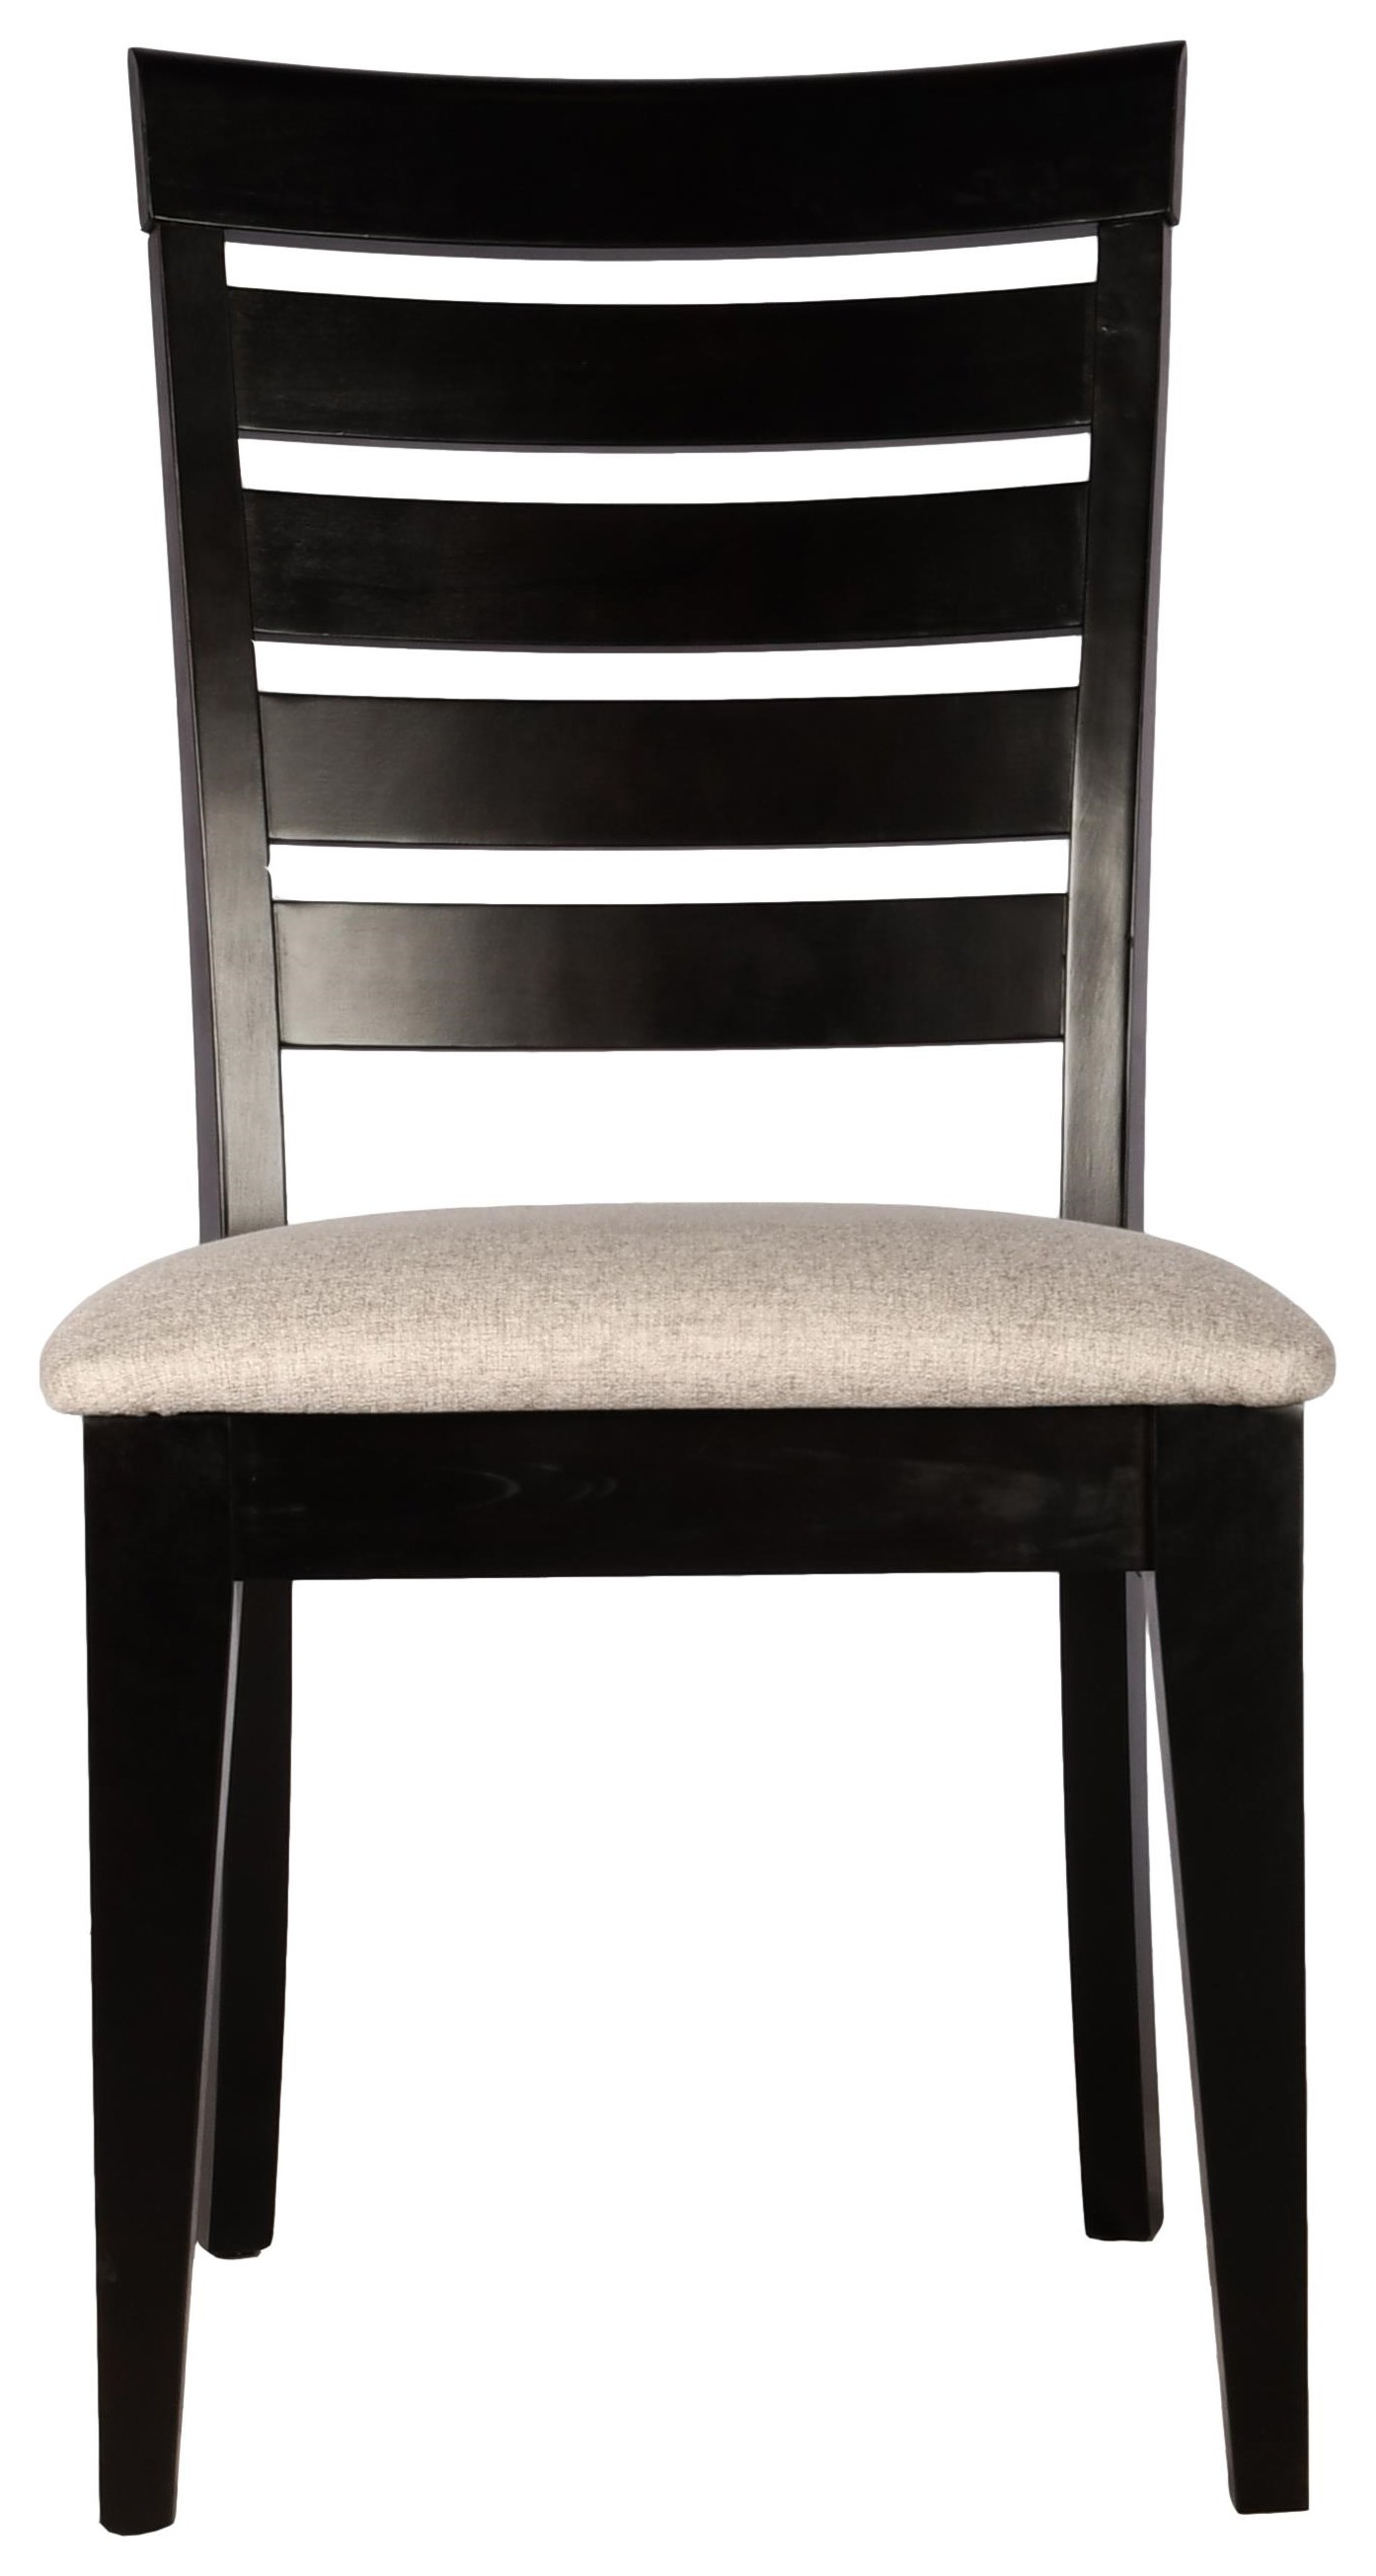 Gourmet Chair by Canadel at Bennett's Furniture and Mattresses